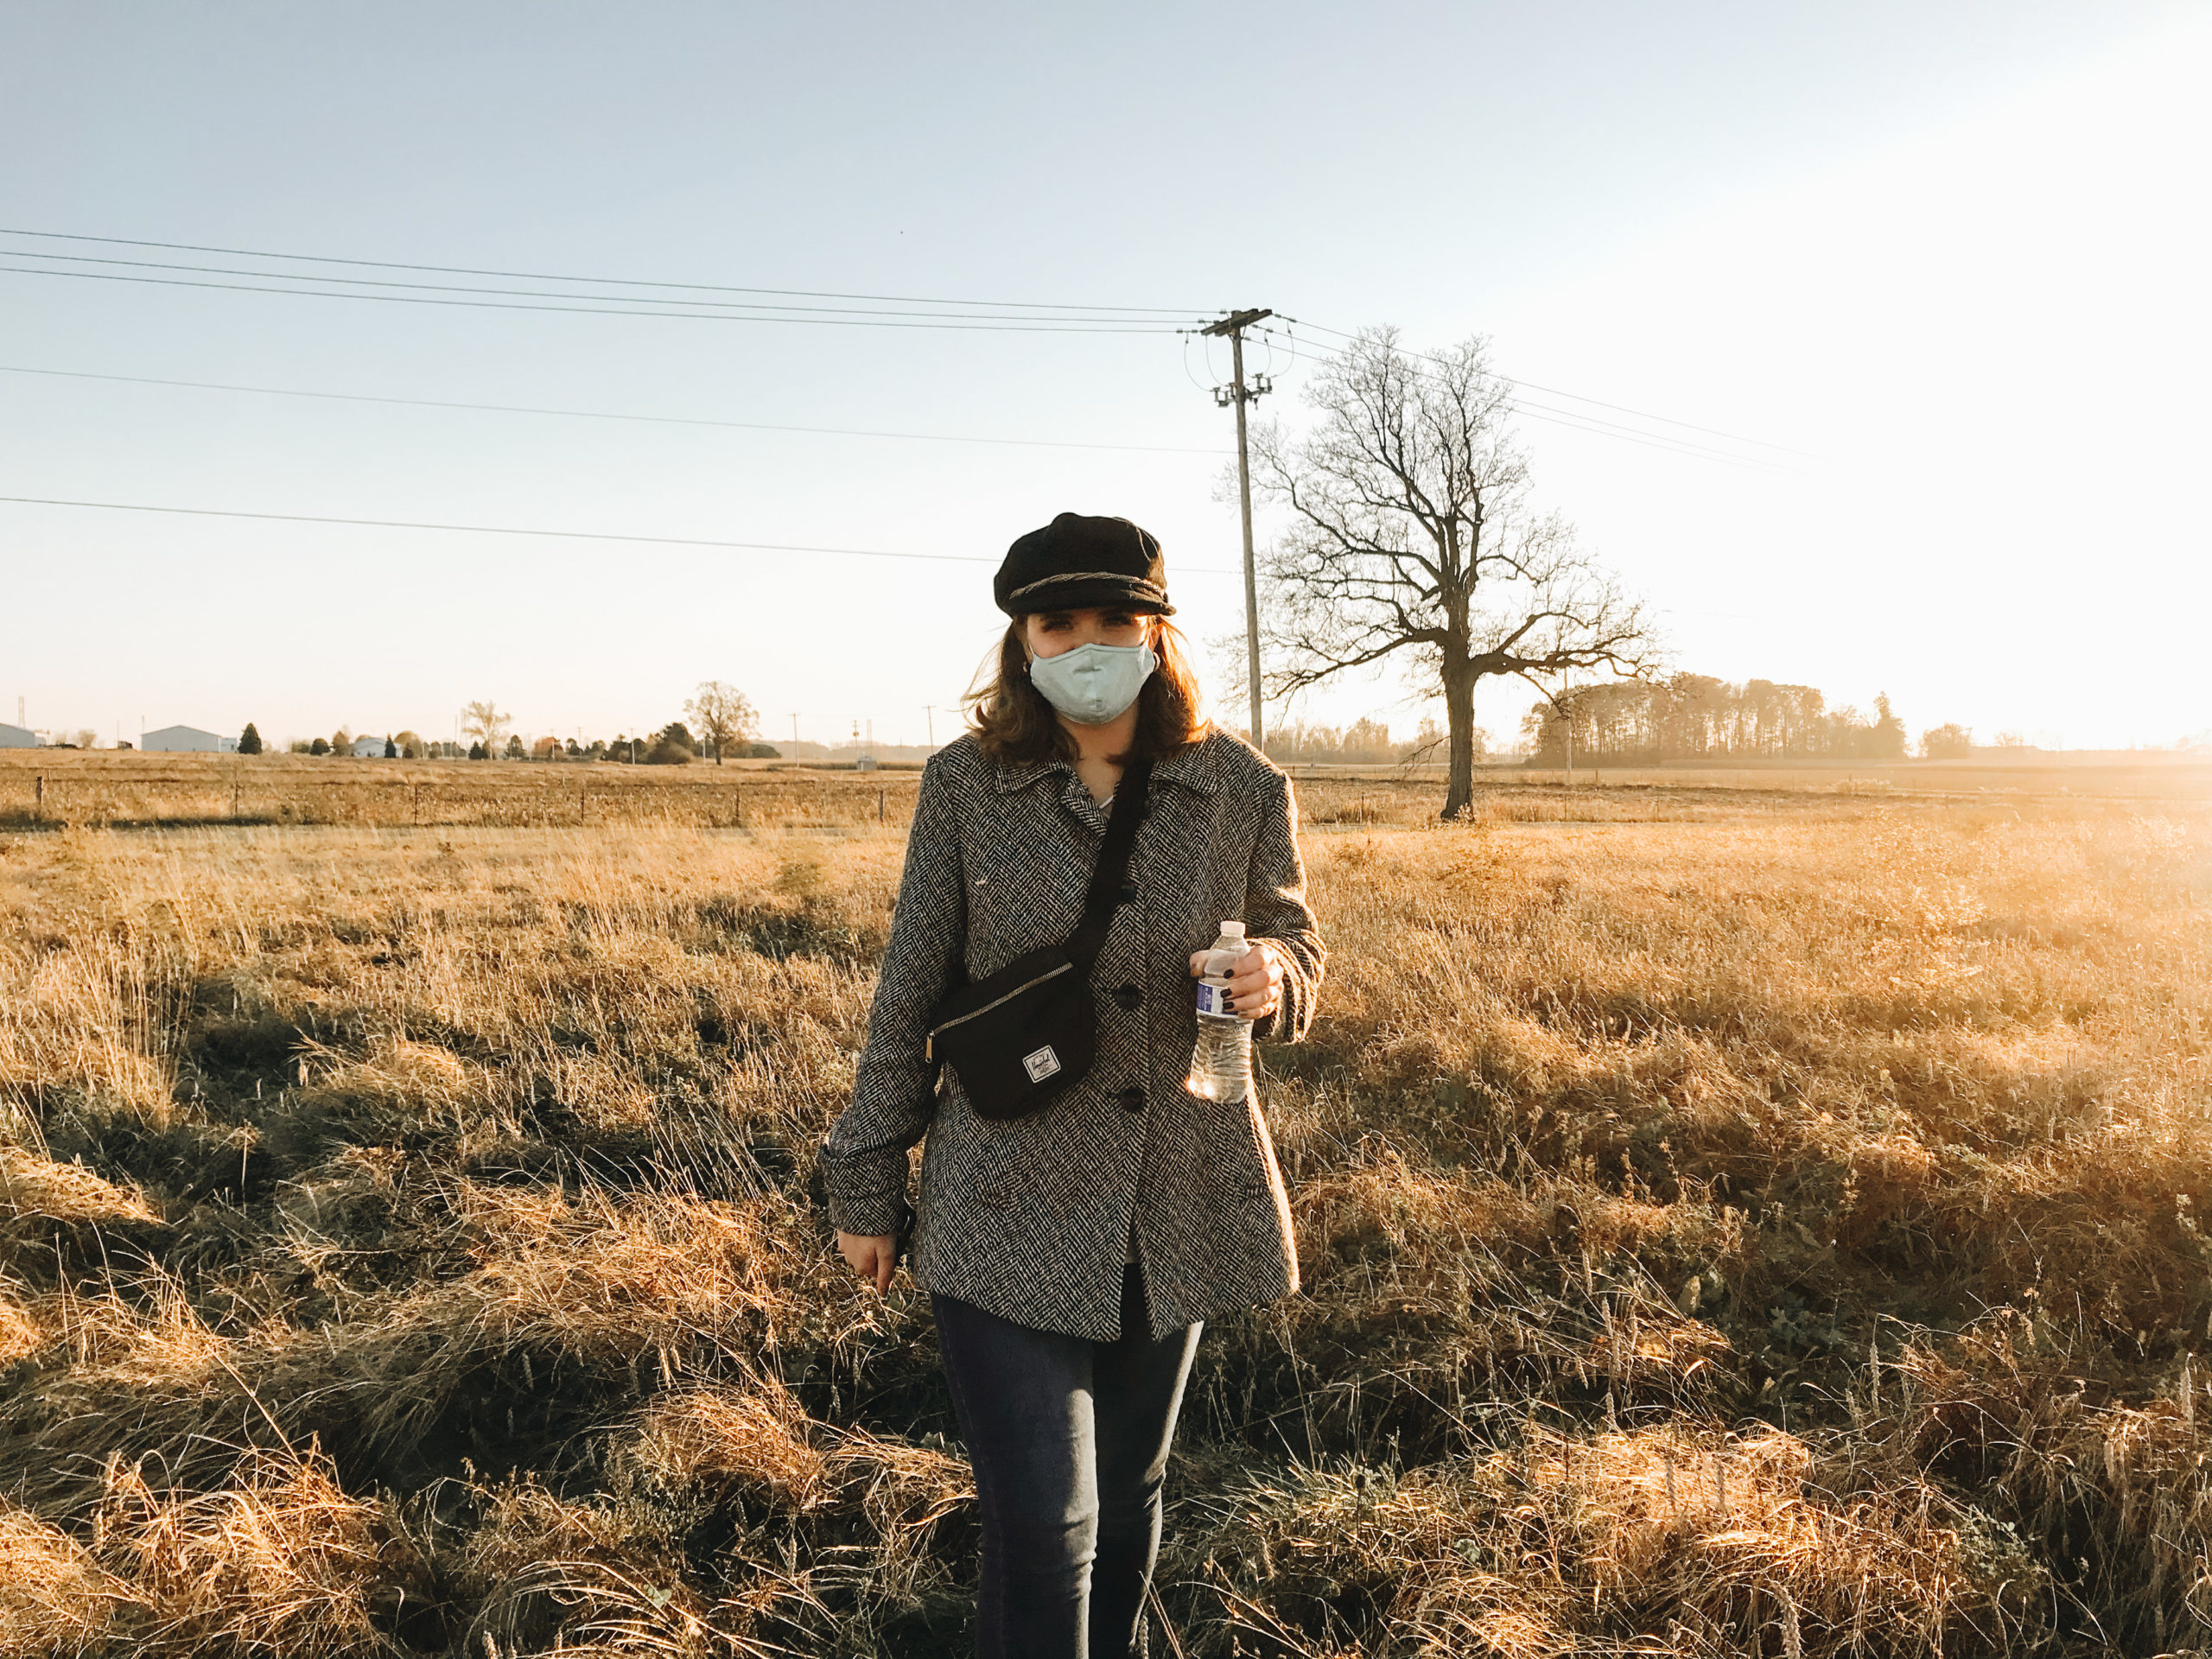 Photo of a woman wearing a gray jacket, black hat, black cross-body bag, and blue surgical mask is holding a plastic water bottle and standing in a field of brown grass.